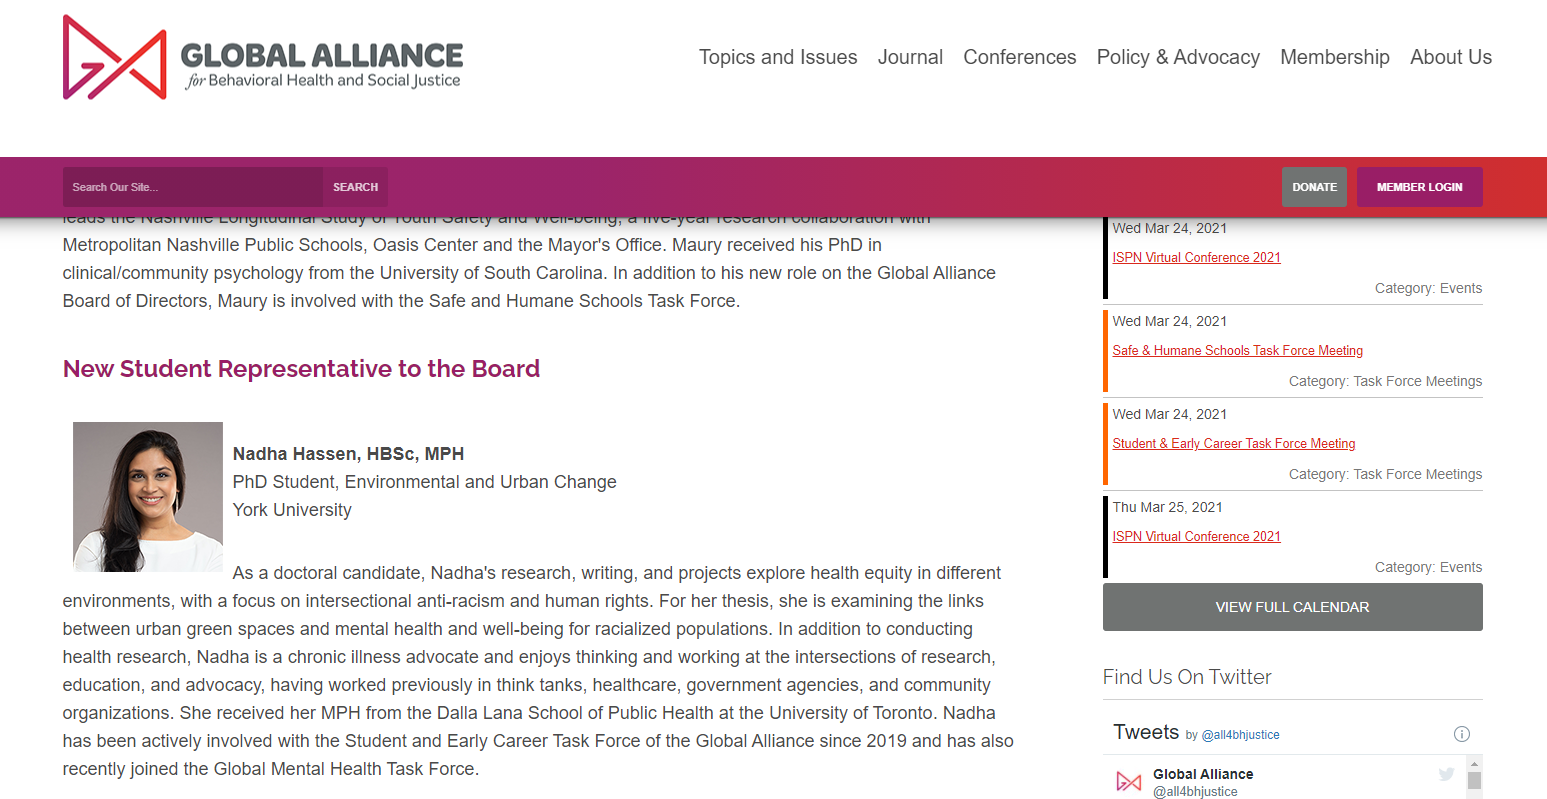 A screenshot from the Global Alliance website with Nadha's name, photo, and short bio.